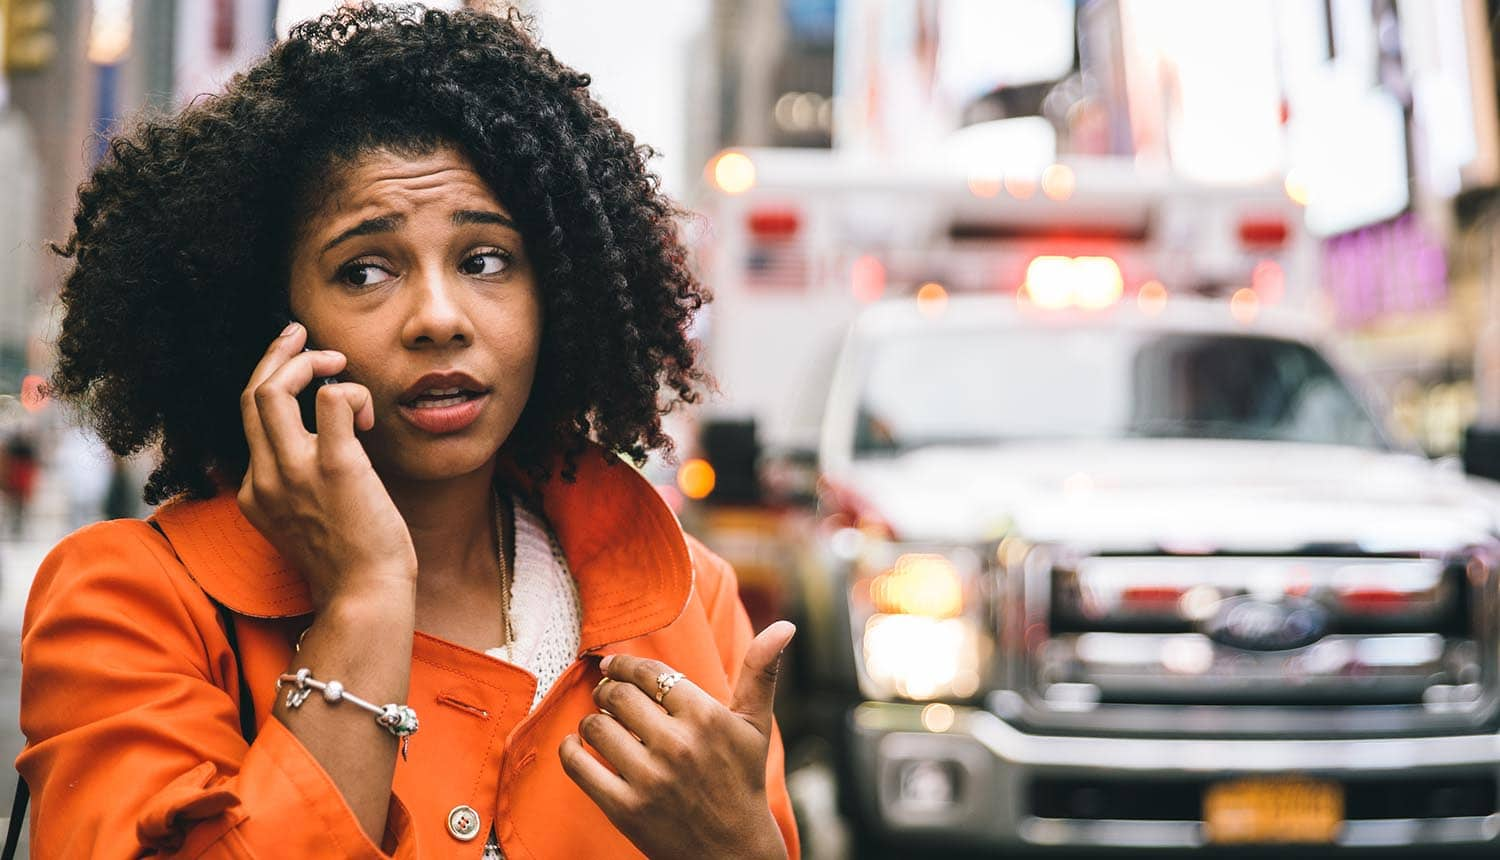 Image of distressed woman speaking on mobile phone with ambulance in the background representing changes in privacy law in Australia regarding breach reporting, big data and the new EU GDPR